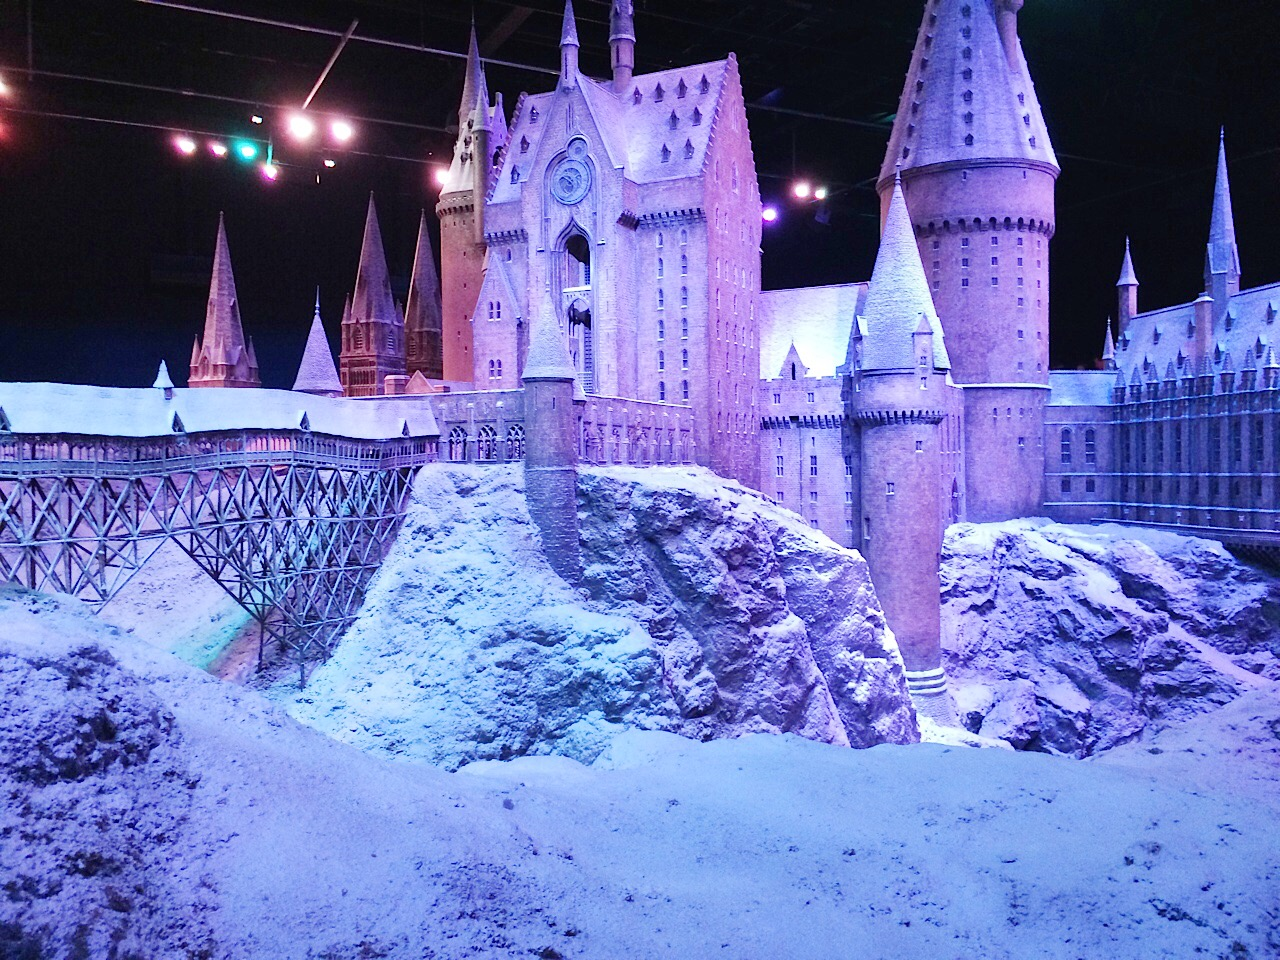 Review of the Harry Potter Studio Tour at the WB Studios by lifestyle blogger FashionFake